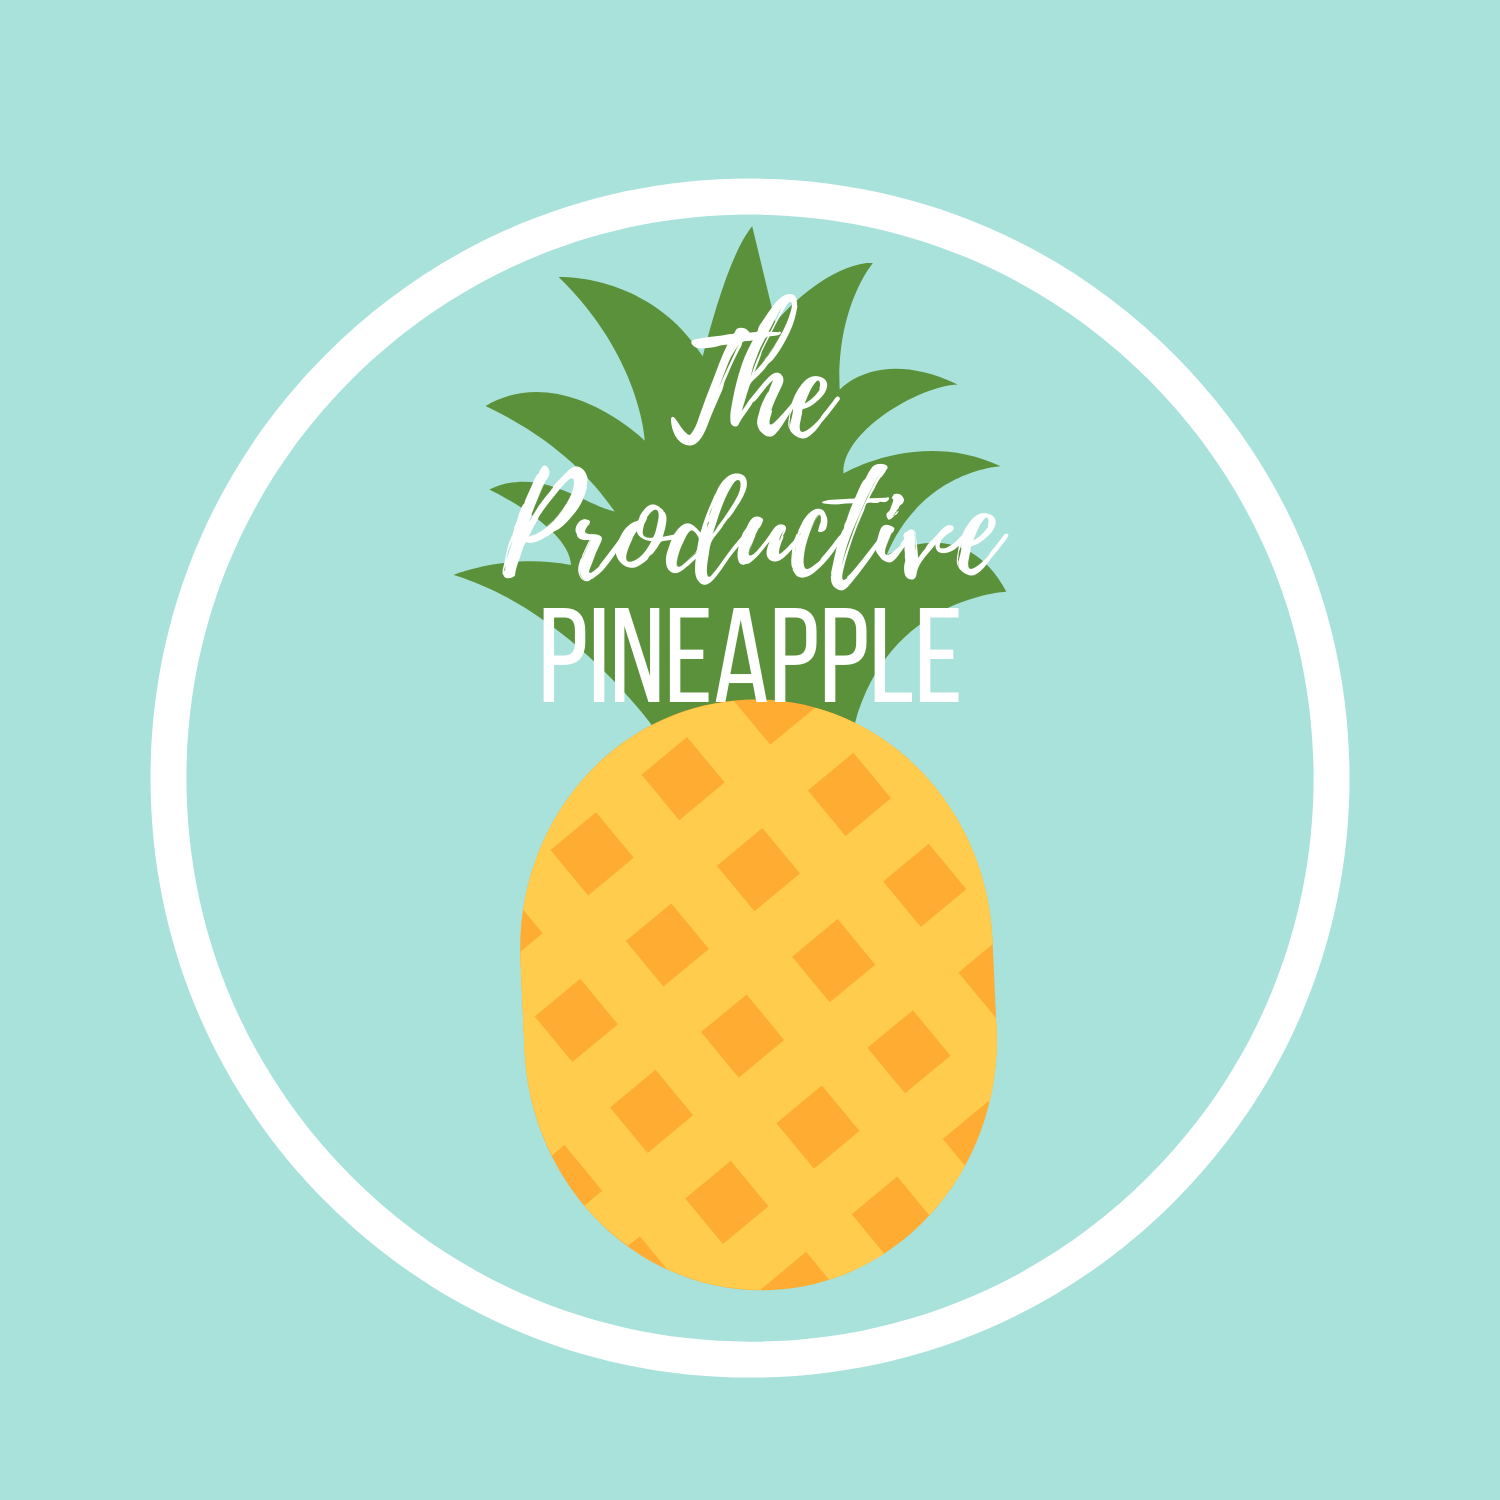 The Productive Pineapple